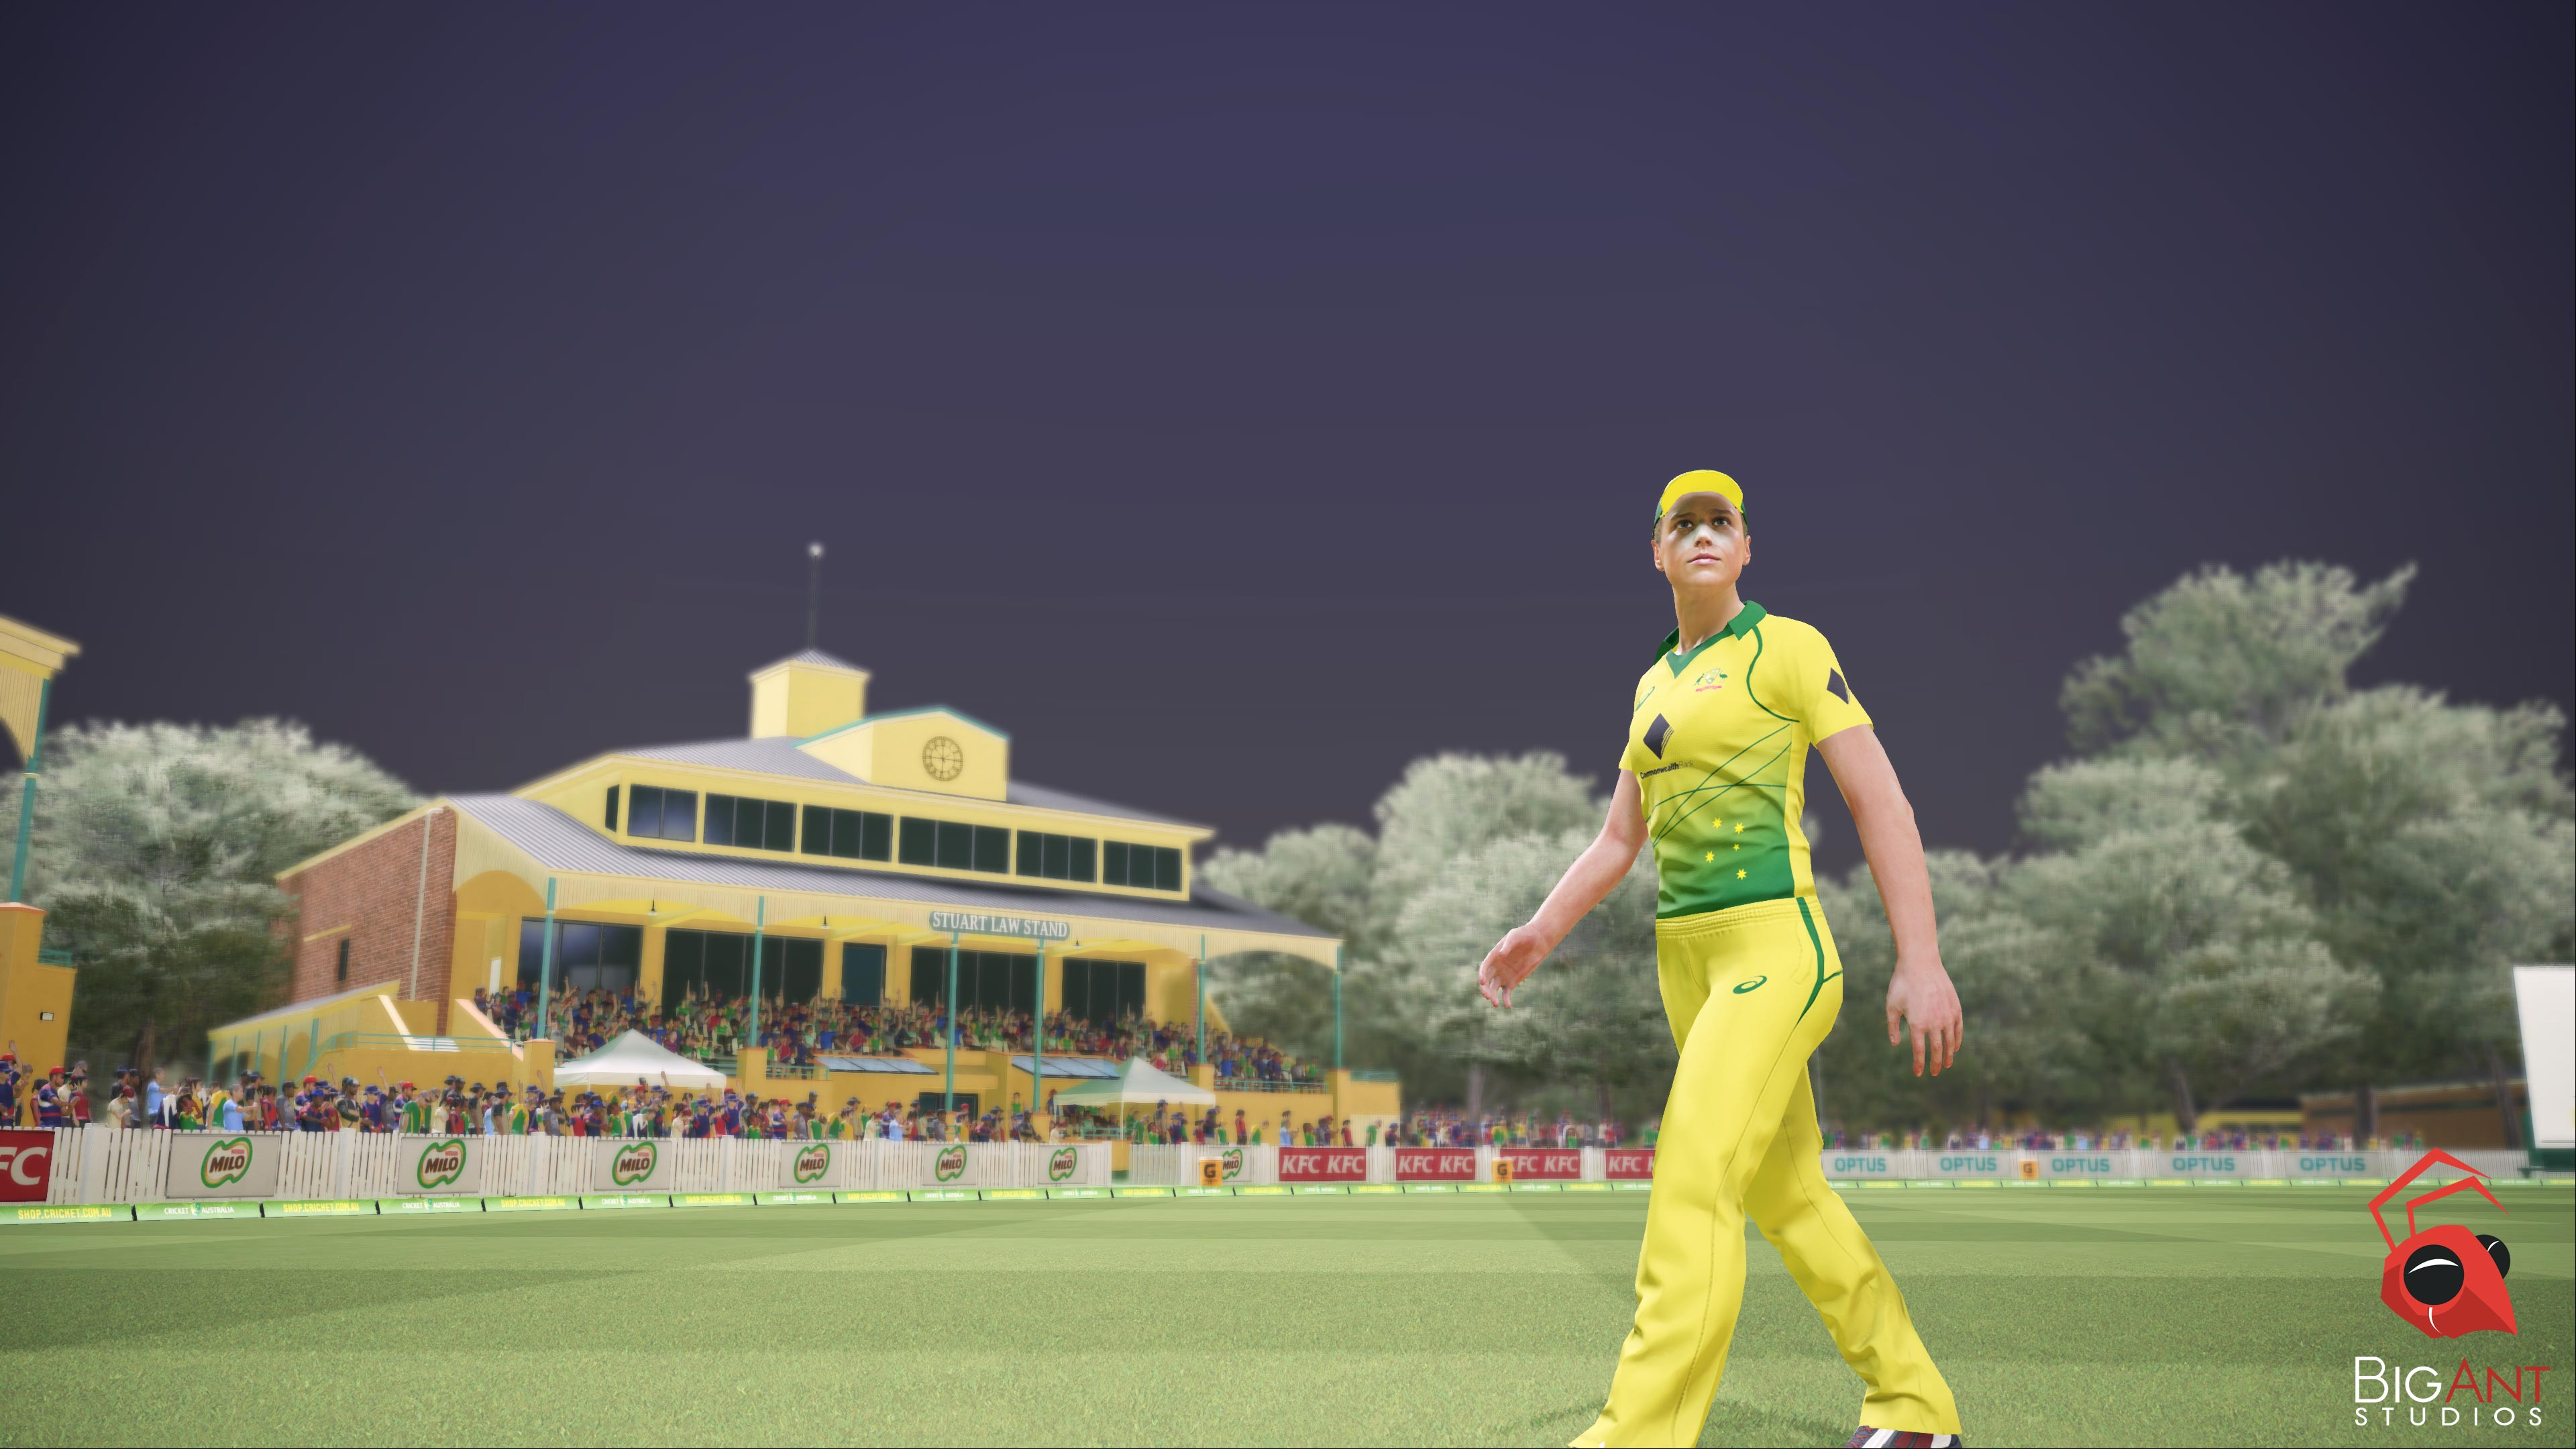 Fans can play as Ellyse Perry and the Australian Women's Cricket Team // Big Ant Studios